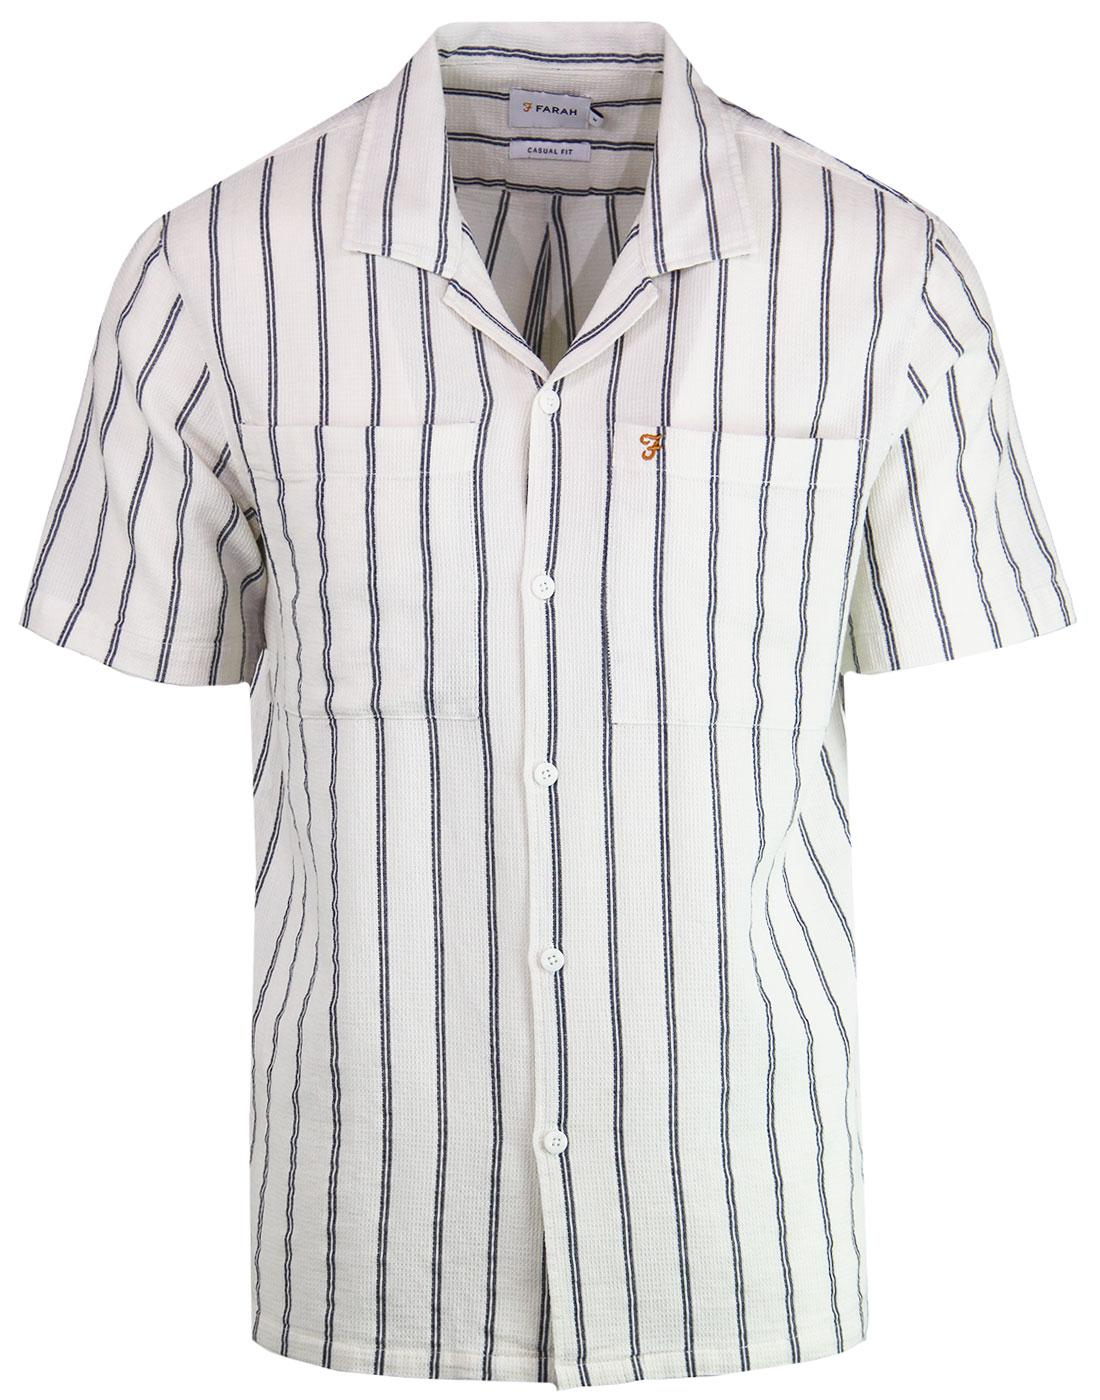 Robbins FARAH Retro Stripe Resort Collar Shirt (E)